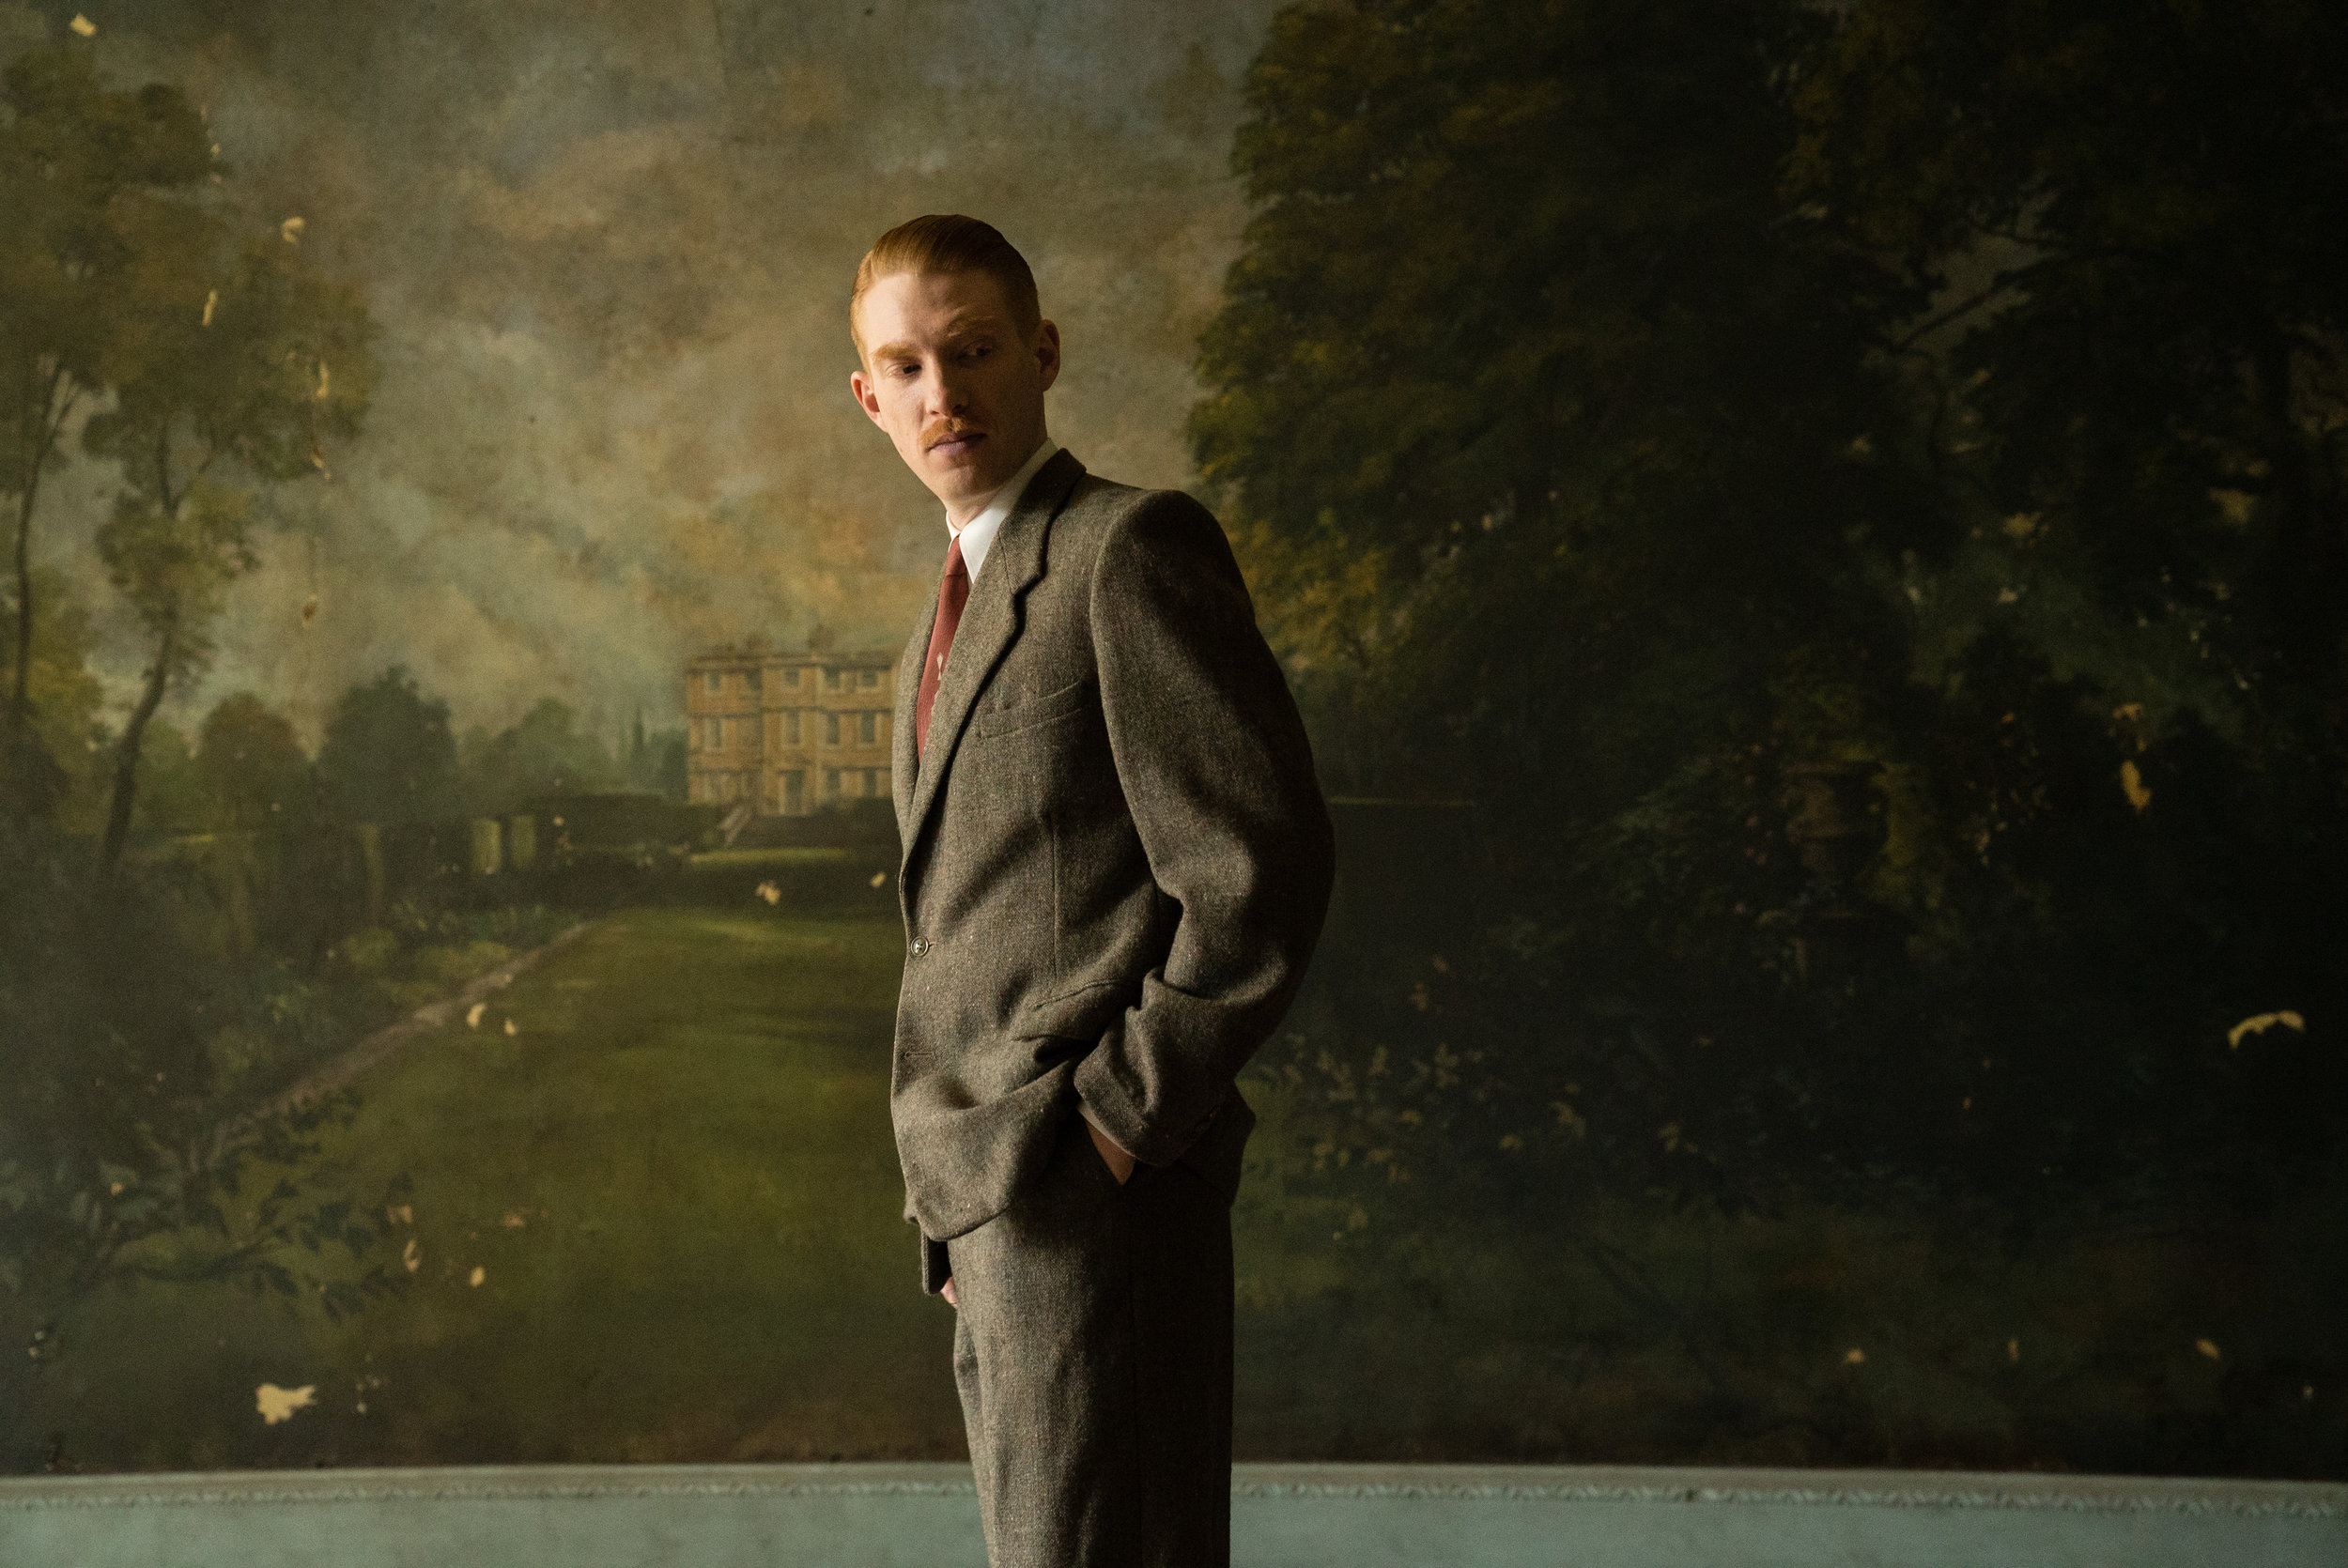 """Domhnall Gleeson plays Dr. Faraday, who makes house calls to a mansion that long has fascinated him, in the suspense thriller """"The Little Stranger."""" (Photo by Nicole Dove, courtesy Focus Features)"""